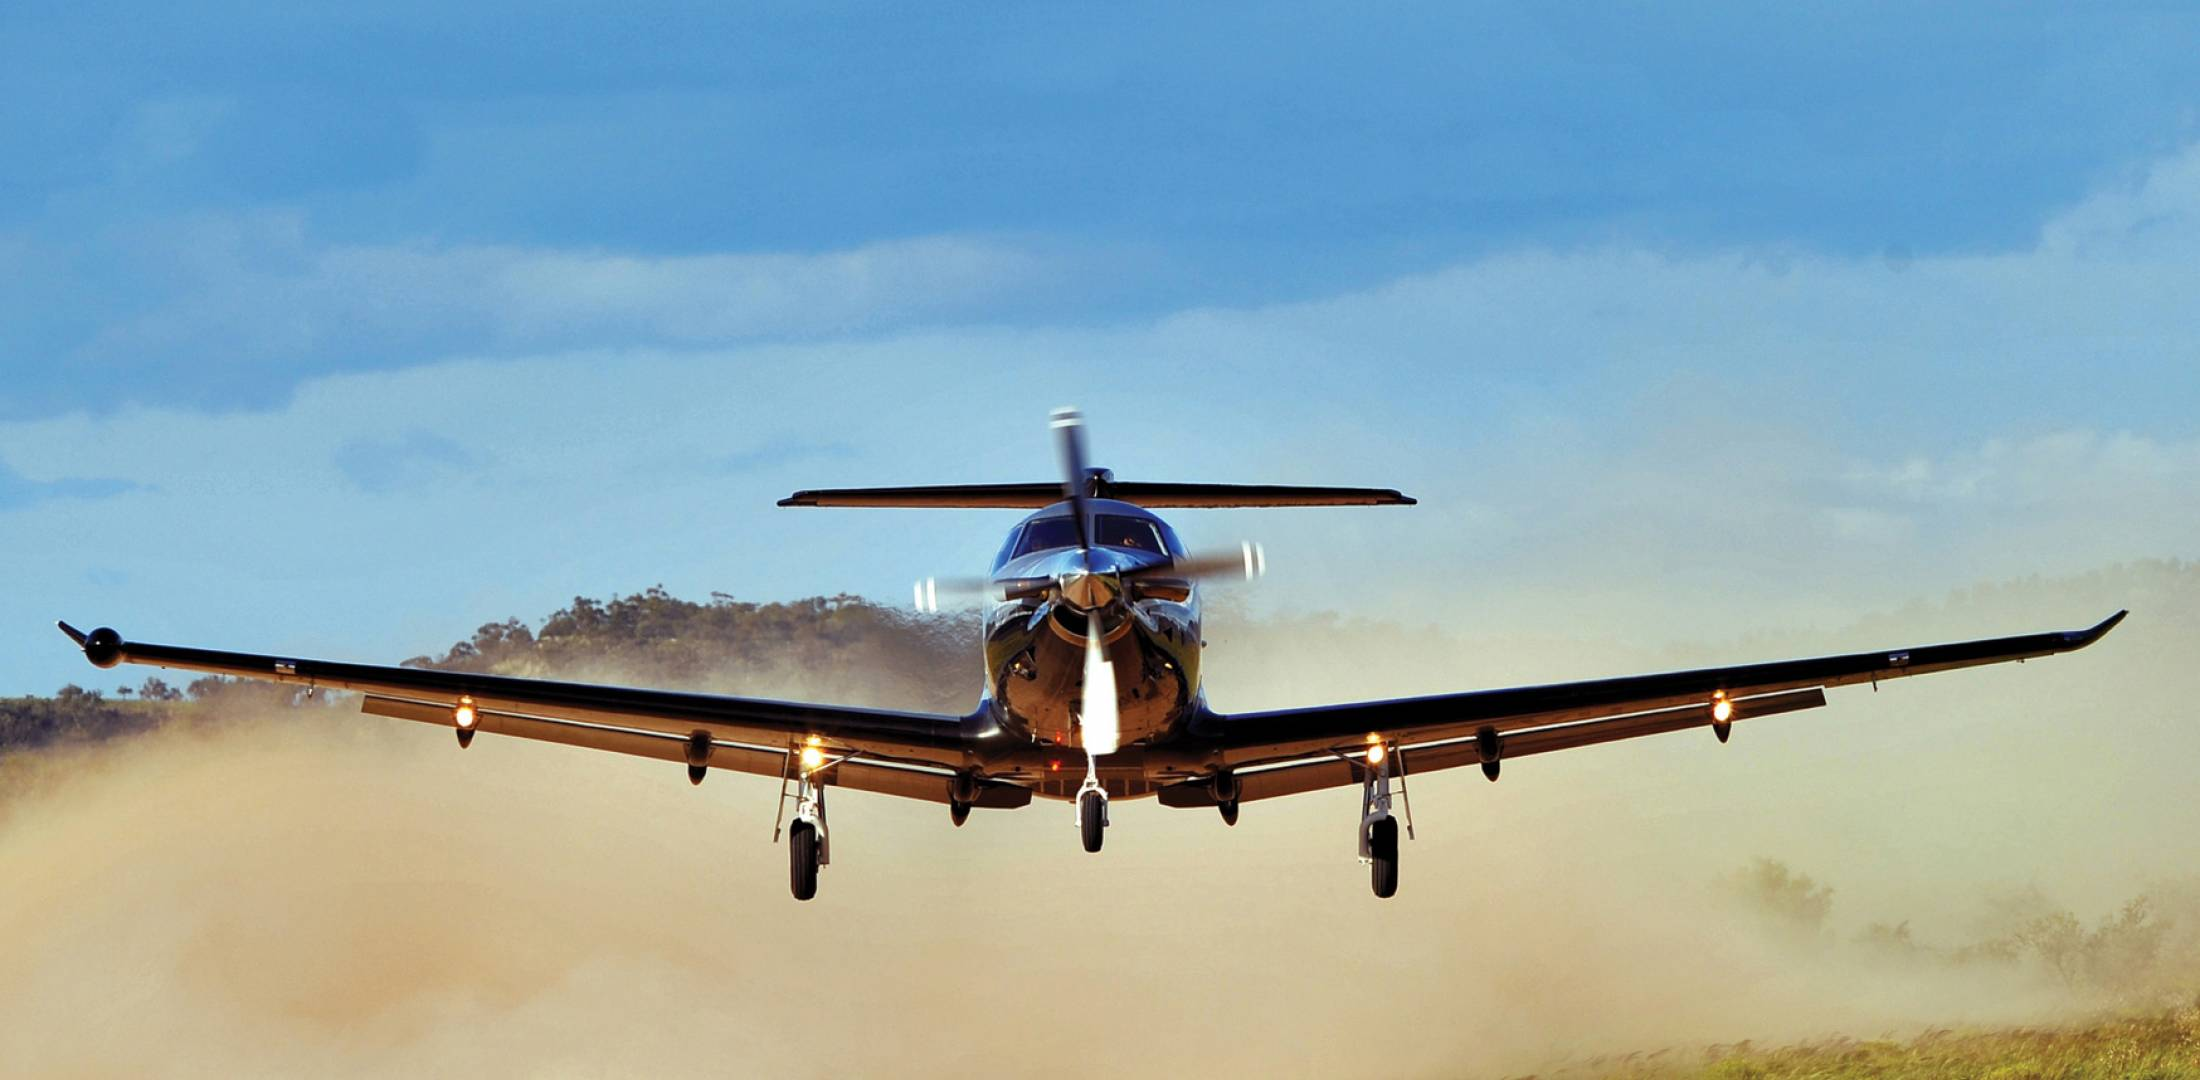 Pilatus PC-12 single-engine turboprop